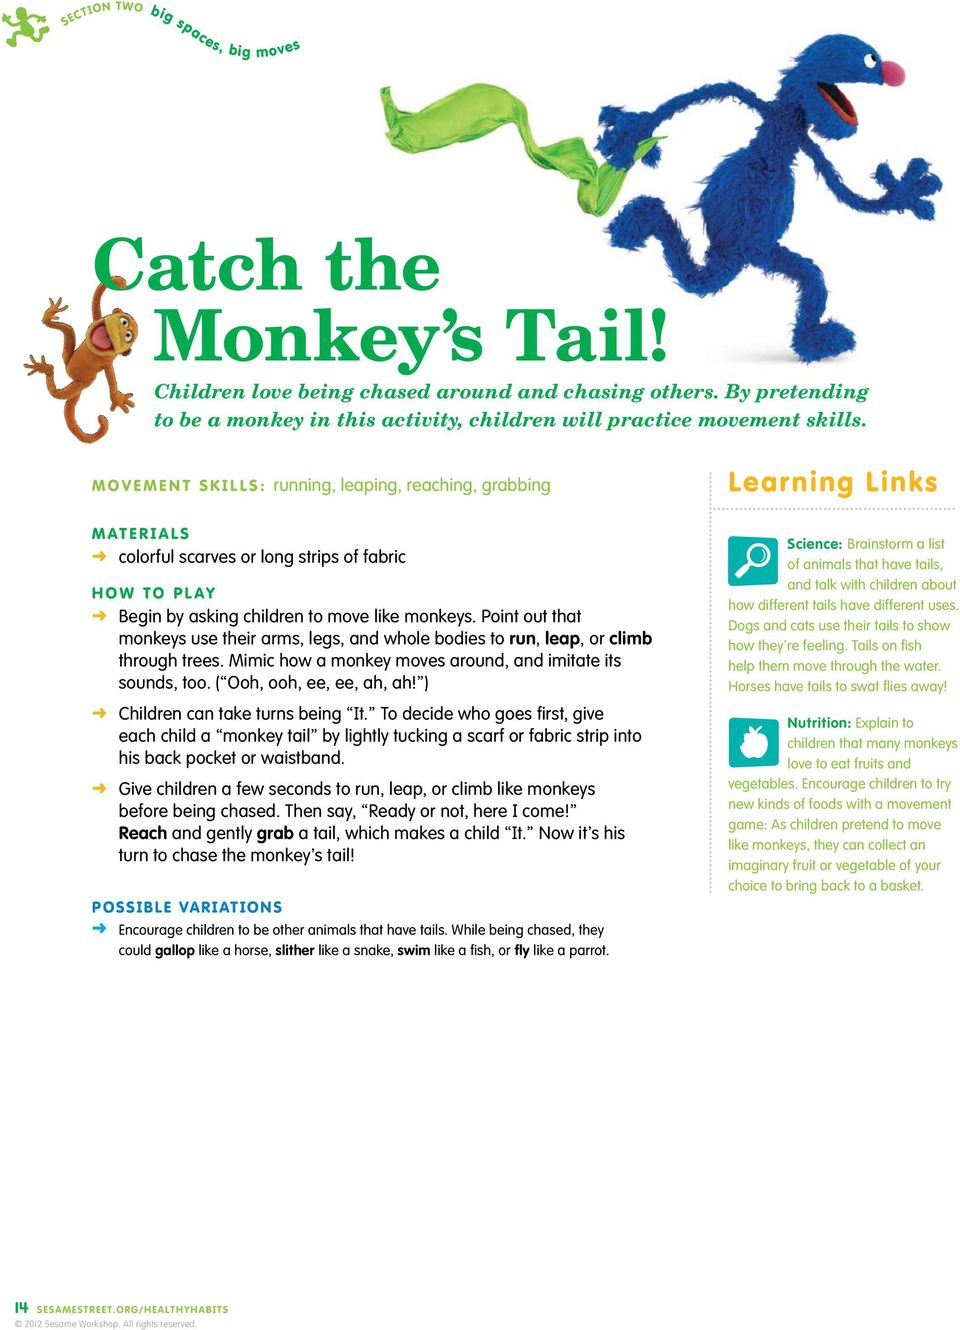 Point out that monkeys use their arms, legs, and whole bodies to run, leap, or climb through trees. Mimic how a monkey moves around, and imitate its sounds, too. ( Ooh, ooh, ee, ee, ah, ah!